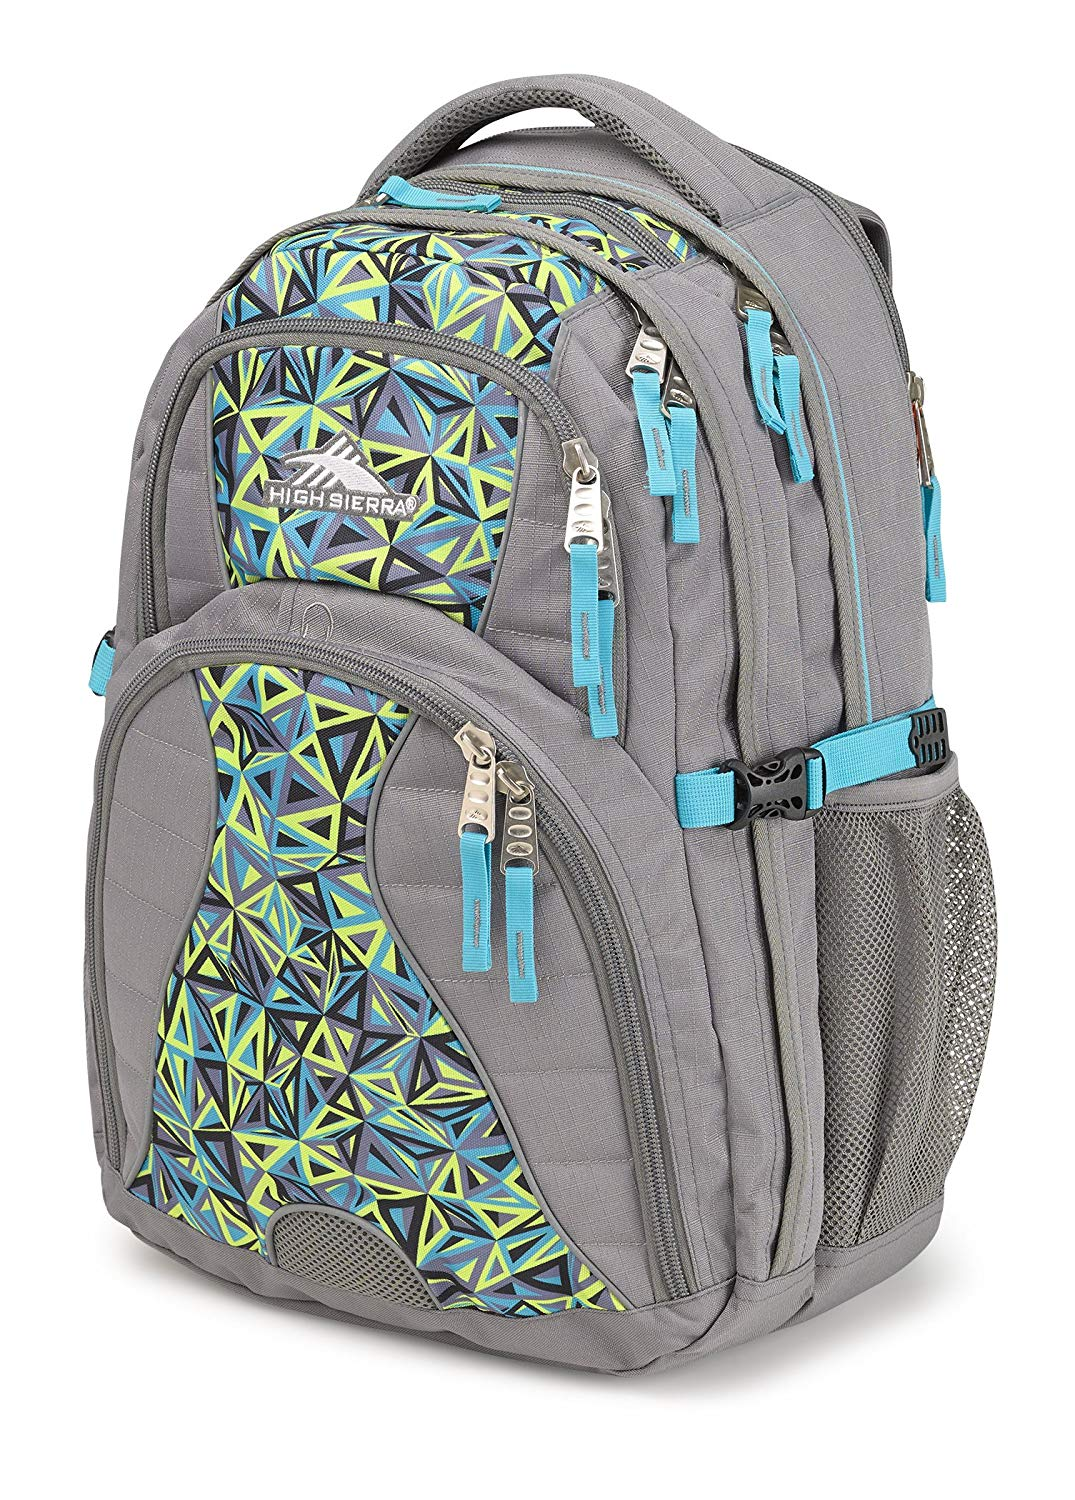 High Sierra Swerve  | Best Backpacks for College